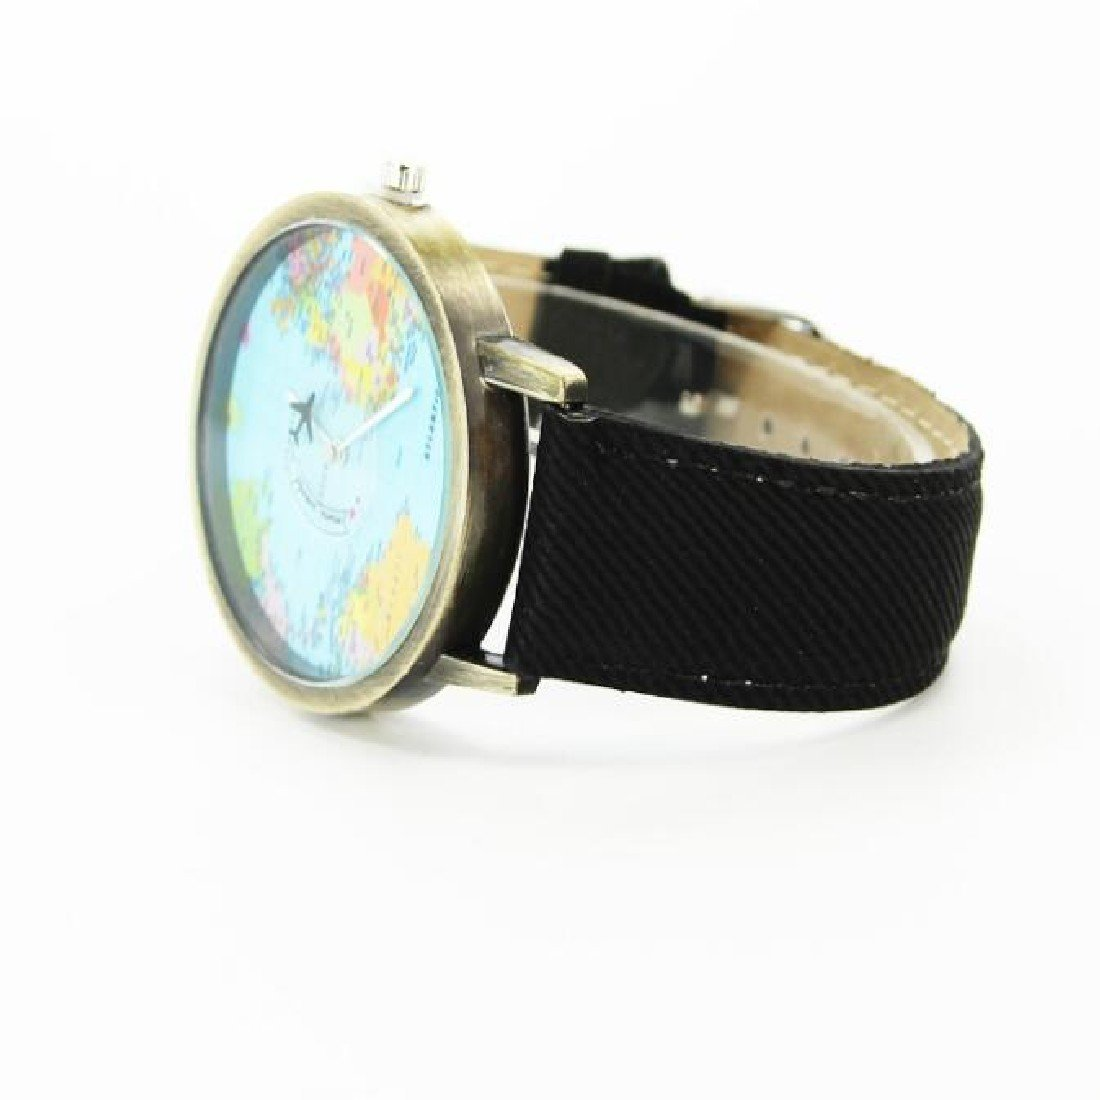 Amazon.com: Women Men Denim Fabric World Map Watches Quartz Relojes Mujer Relogio Feminino Gift Black: Watches